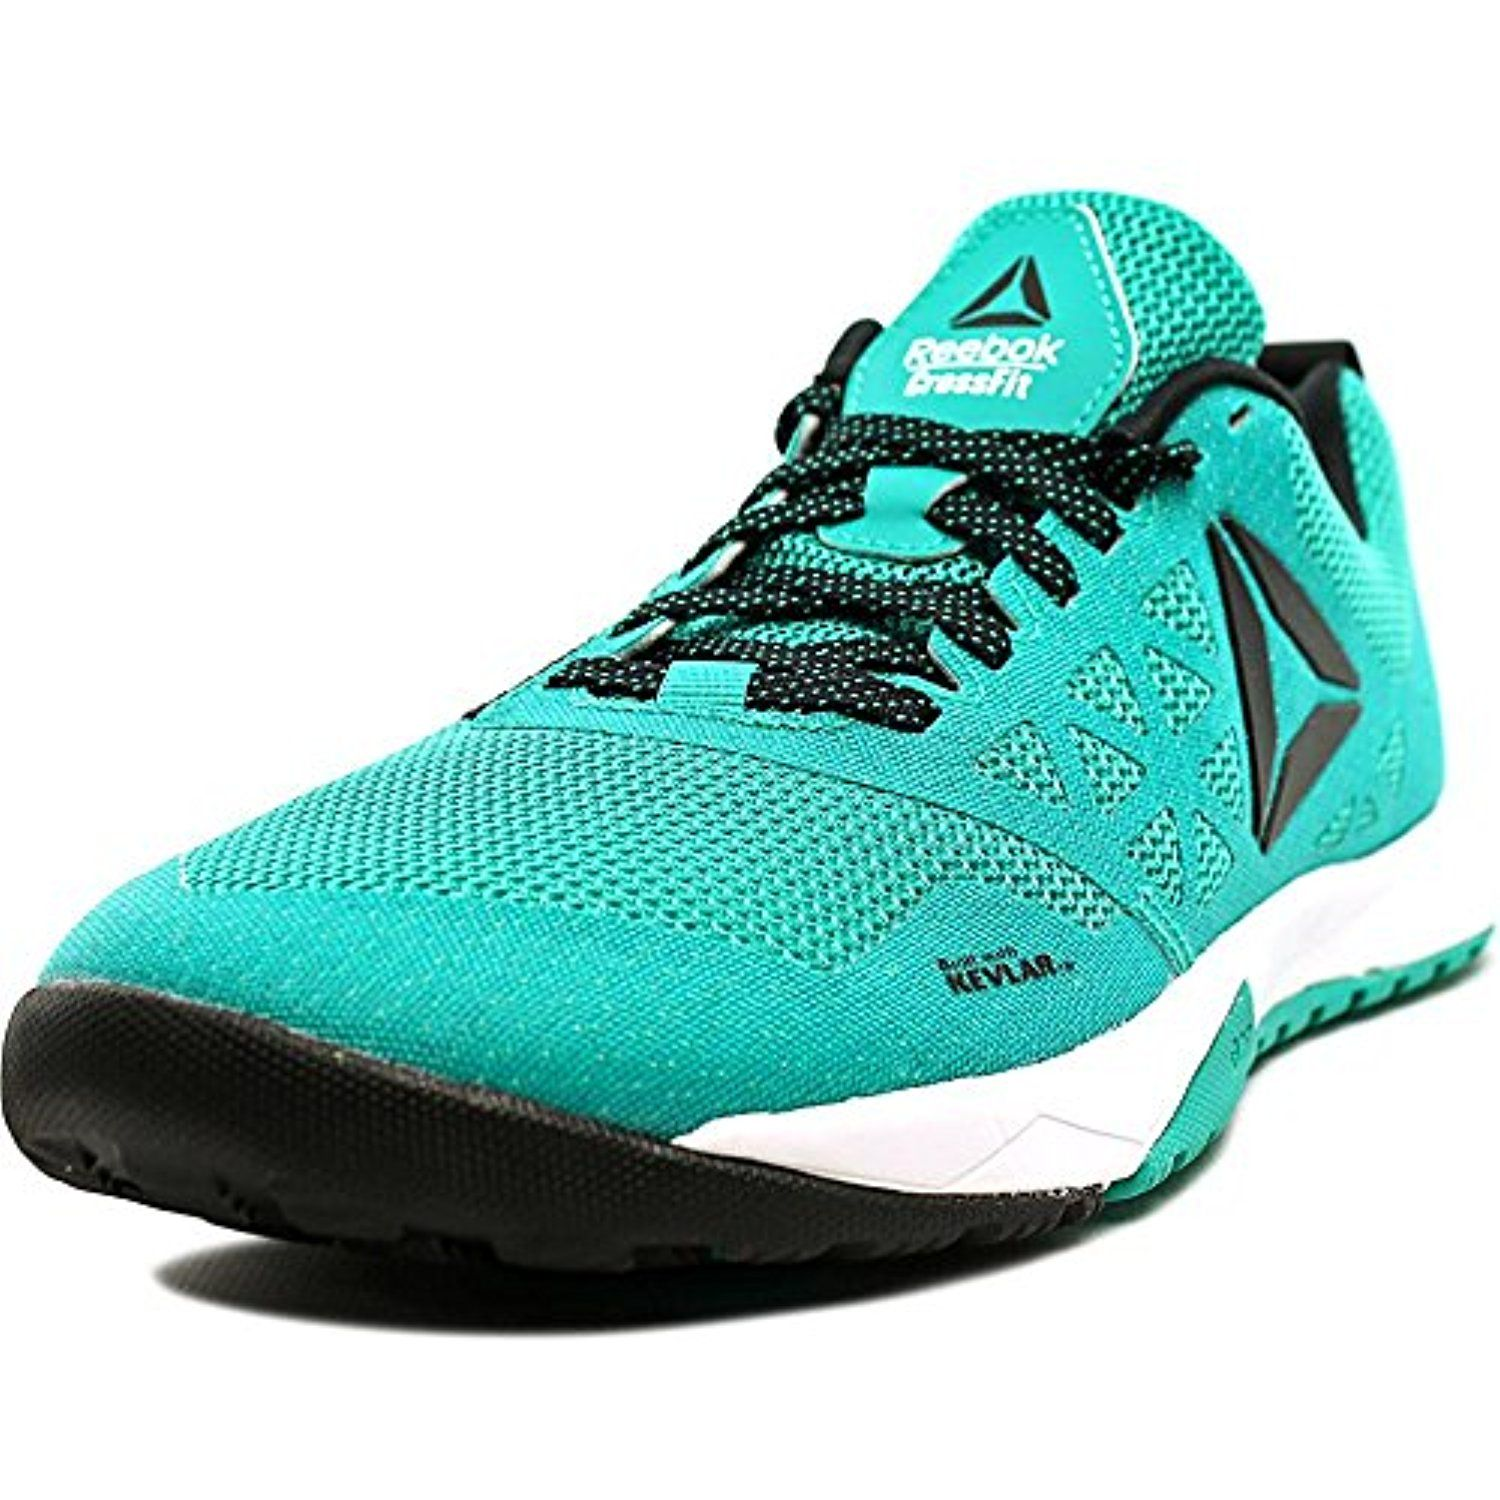 b3f6f6396bb622 Reebok Crossfit Nano 6.0 Junior s Running Shoes     Click image to review  more details. (This is an affiliate link)  Running